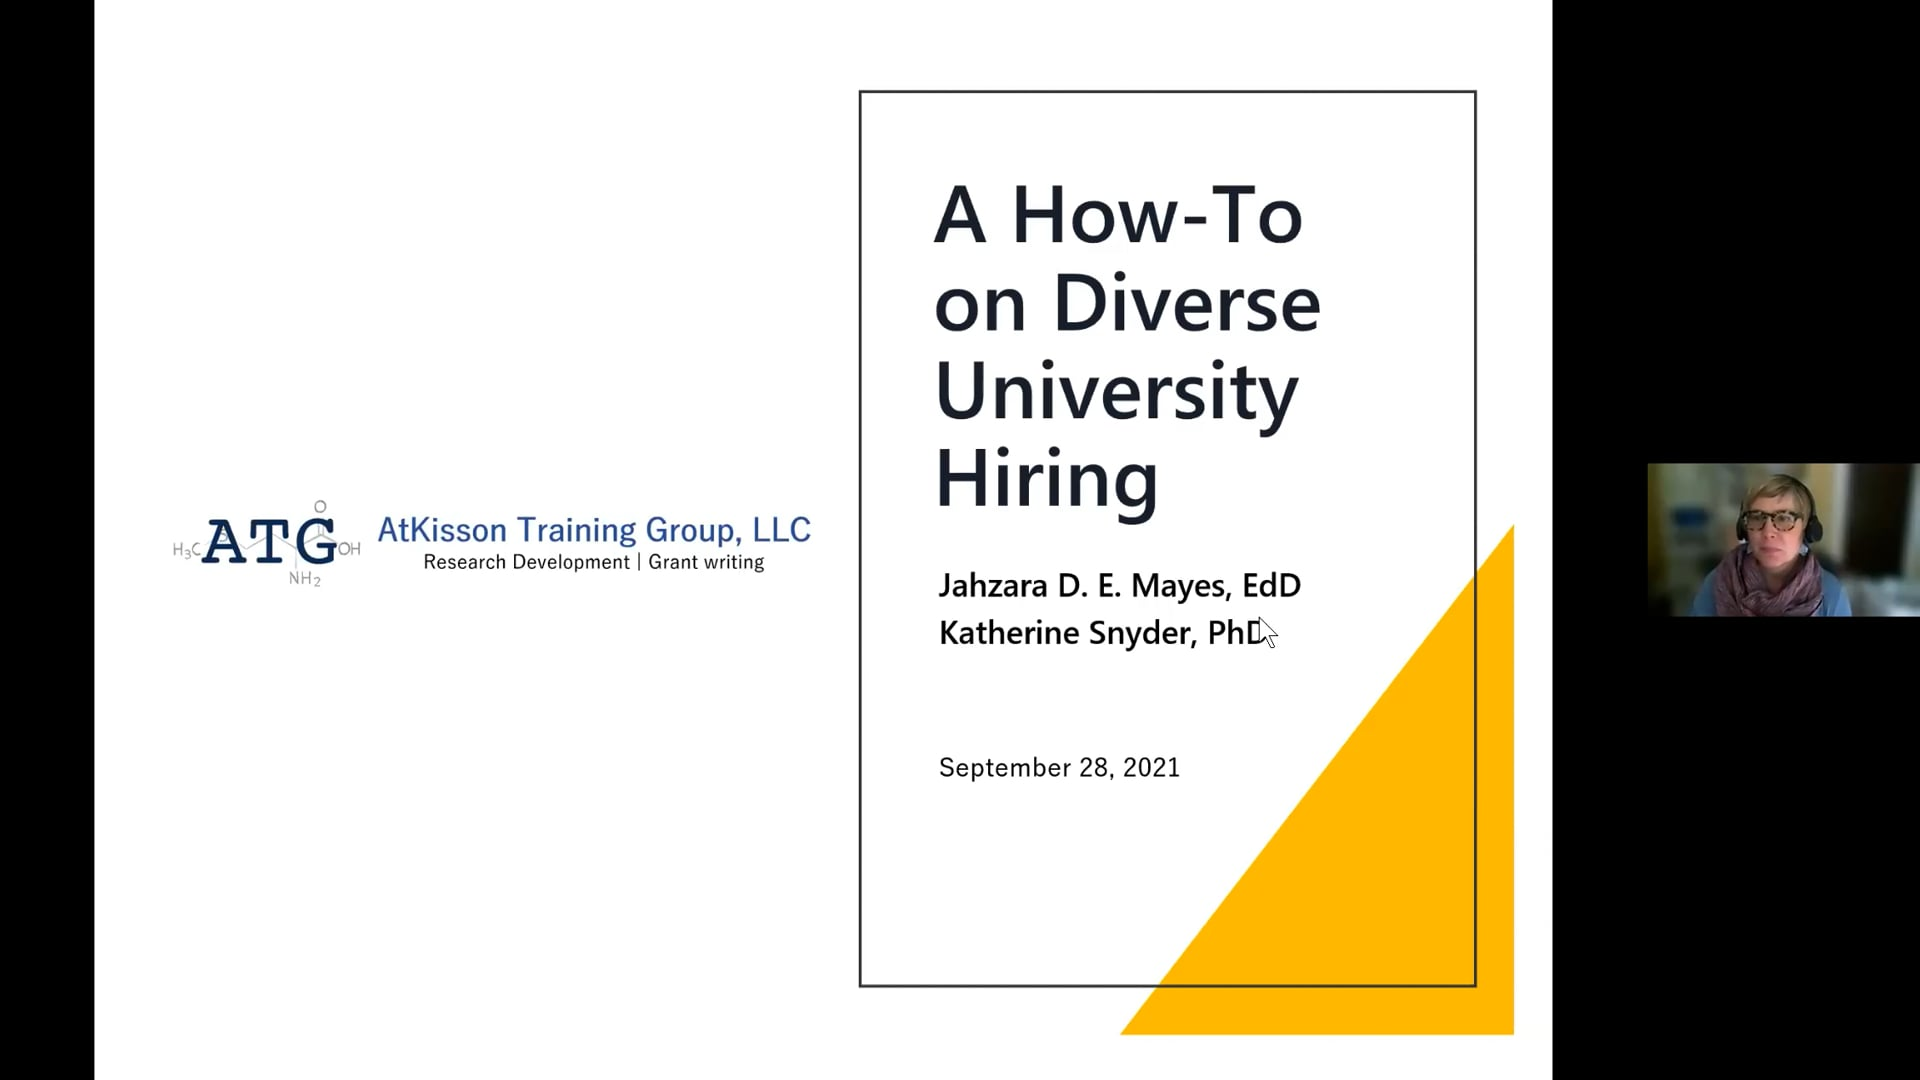 A How-To on Diverse University Hiring